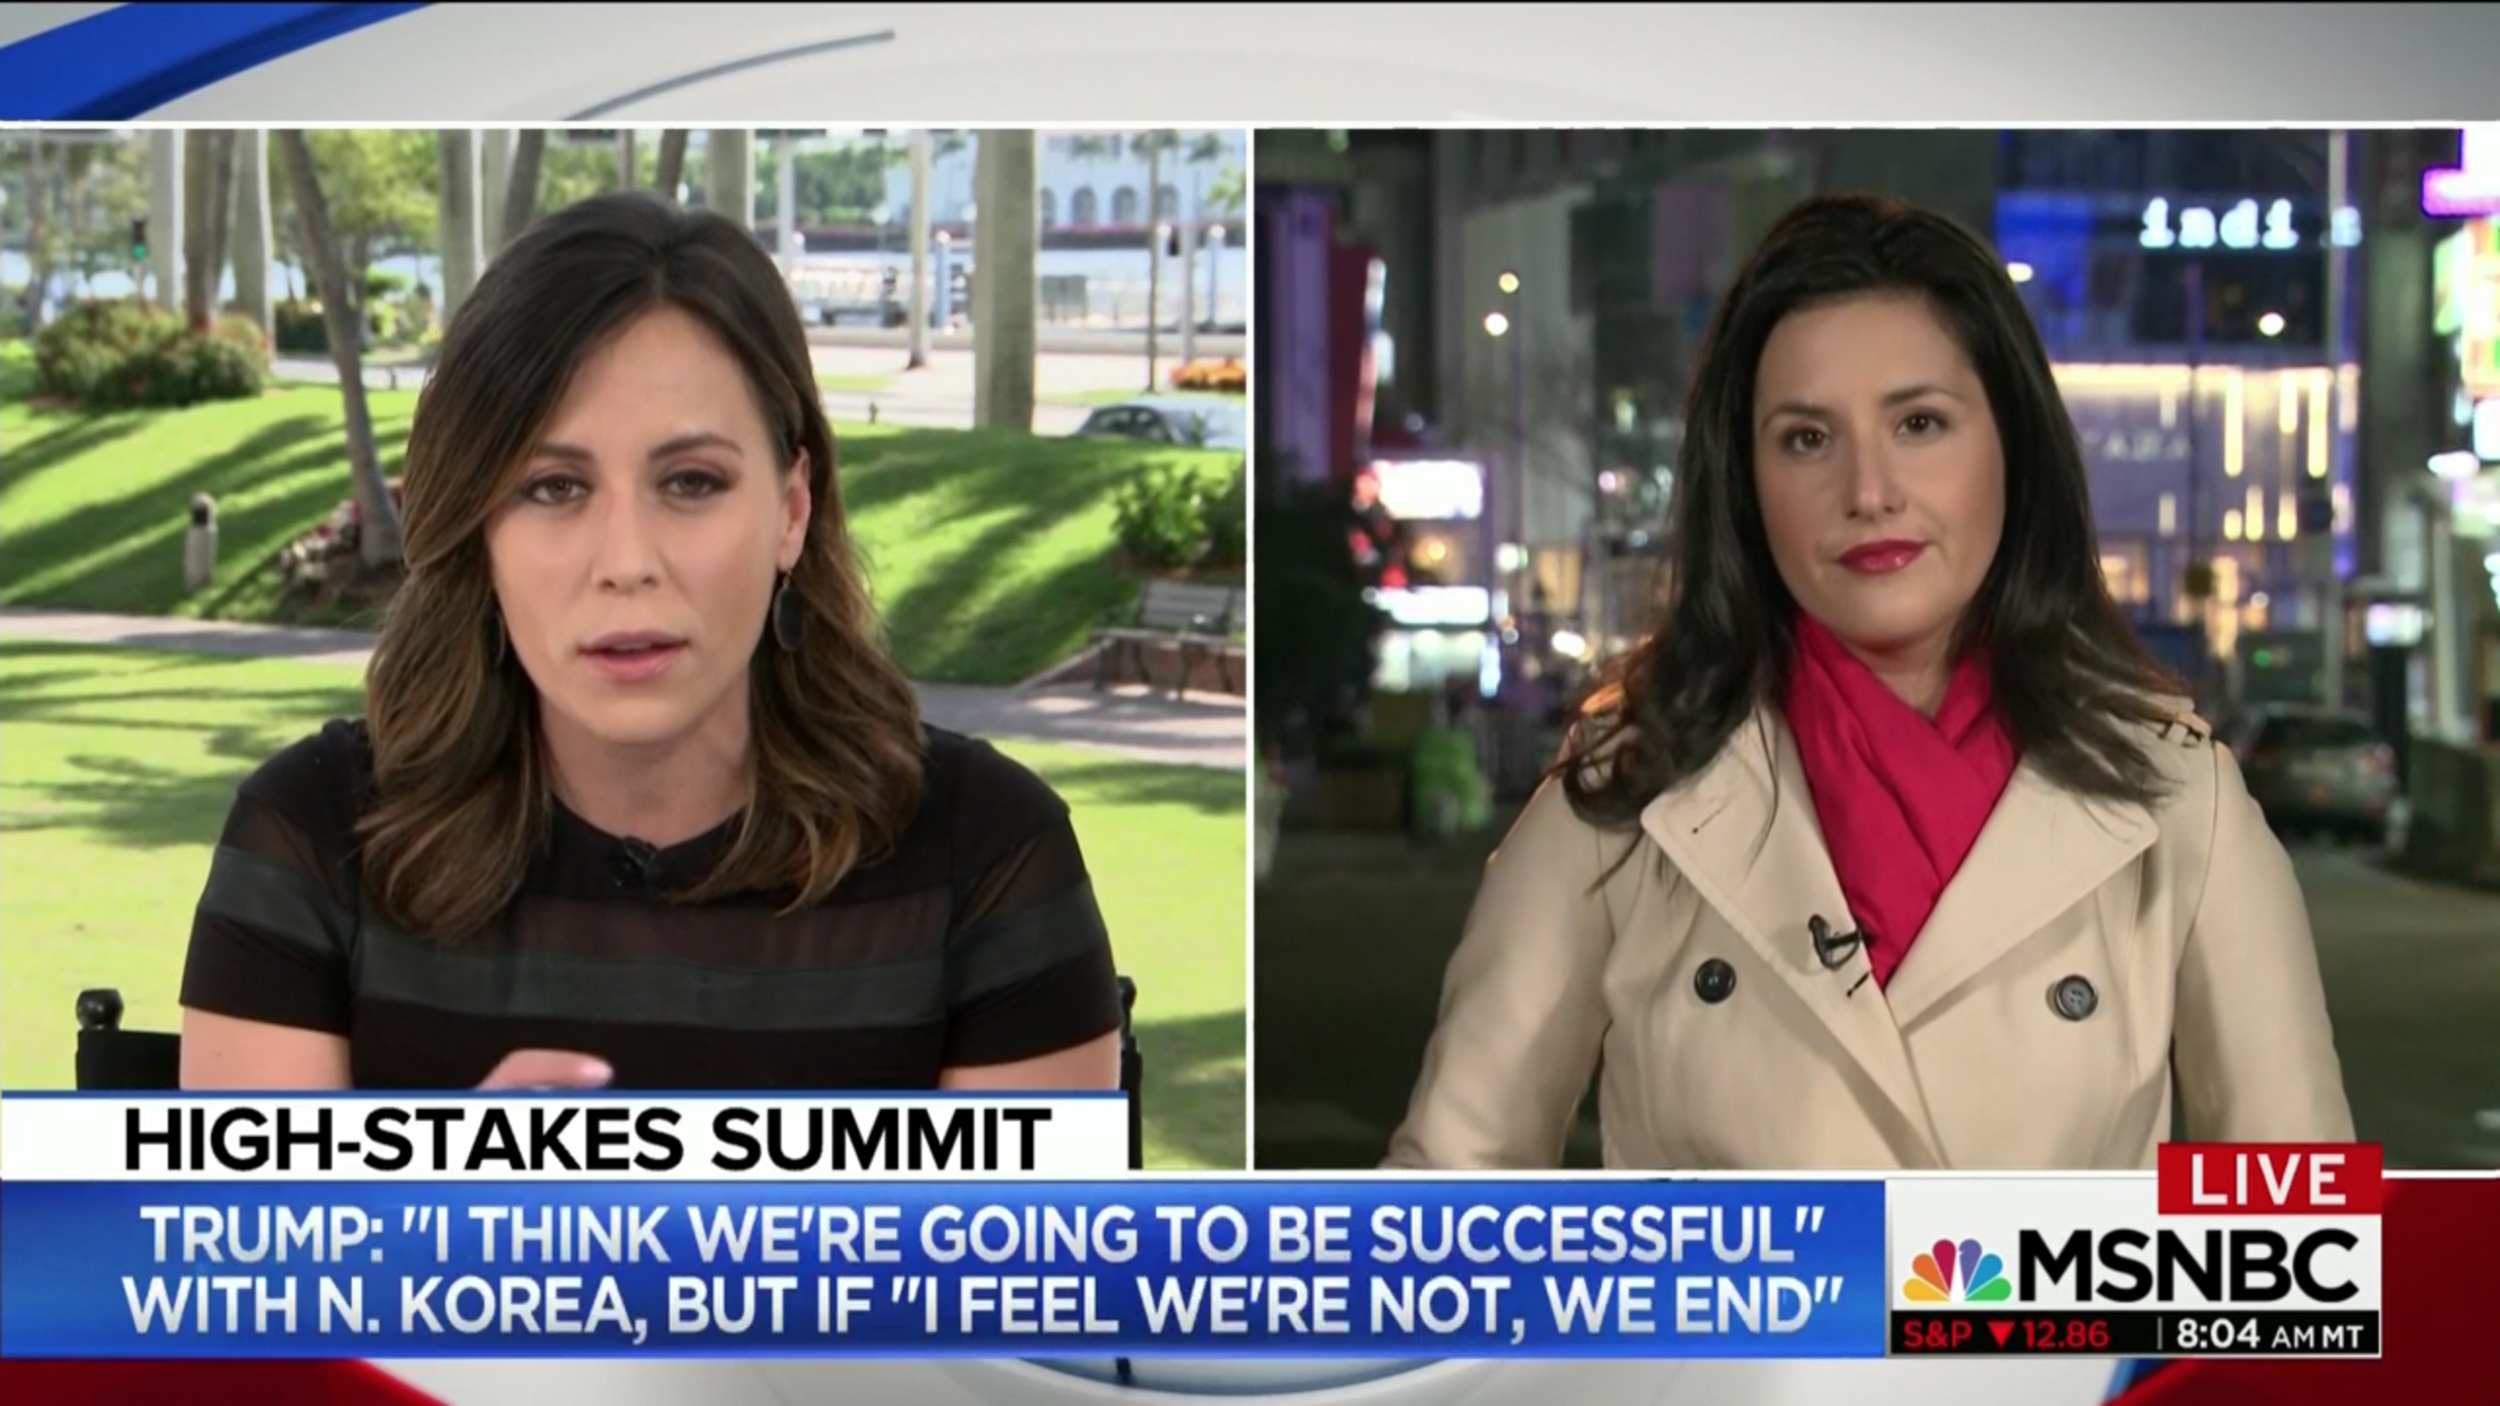 NBC's Lucy Kafanov in Seoul on MSNBC